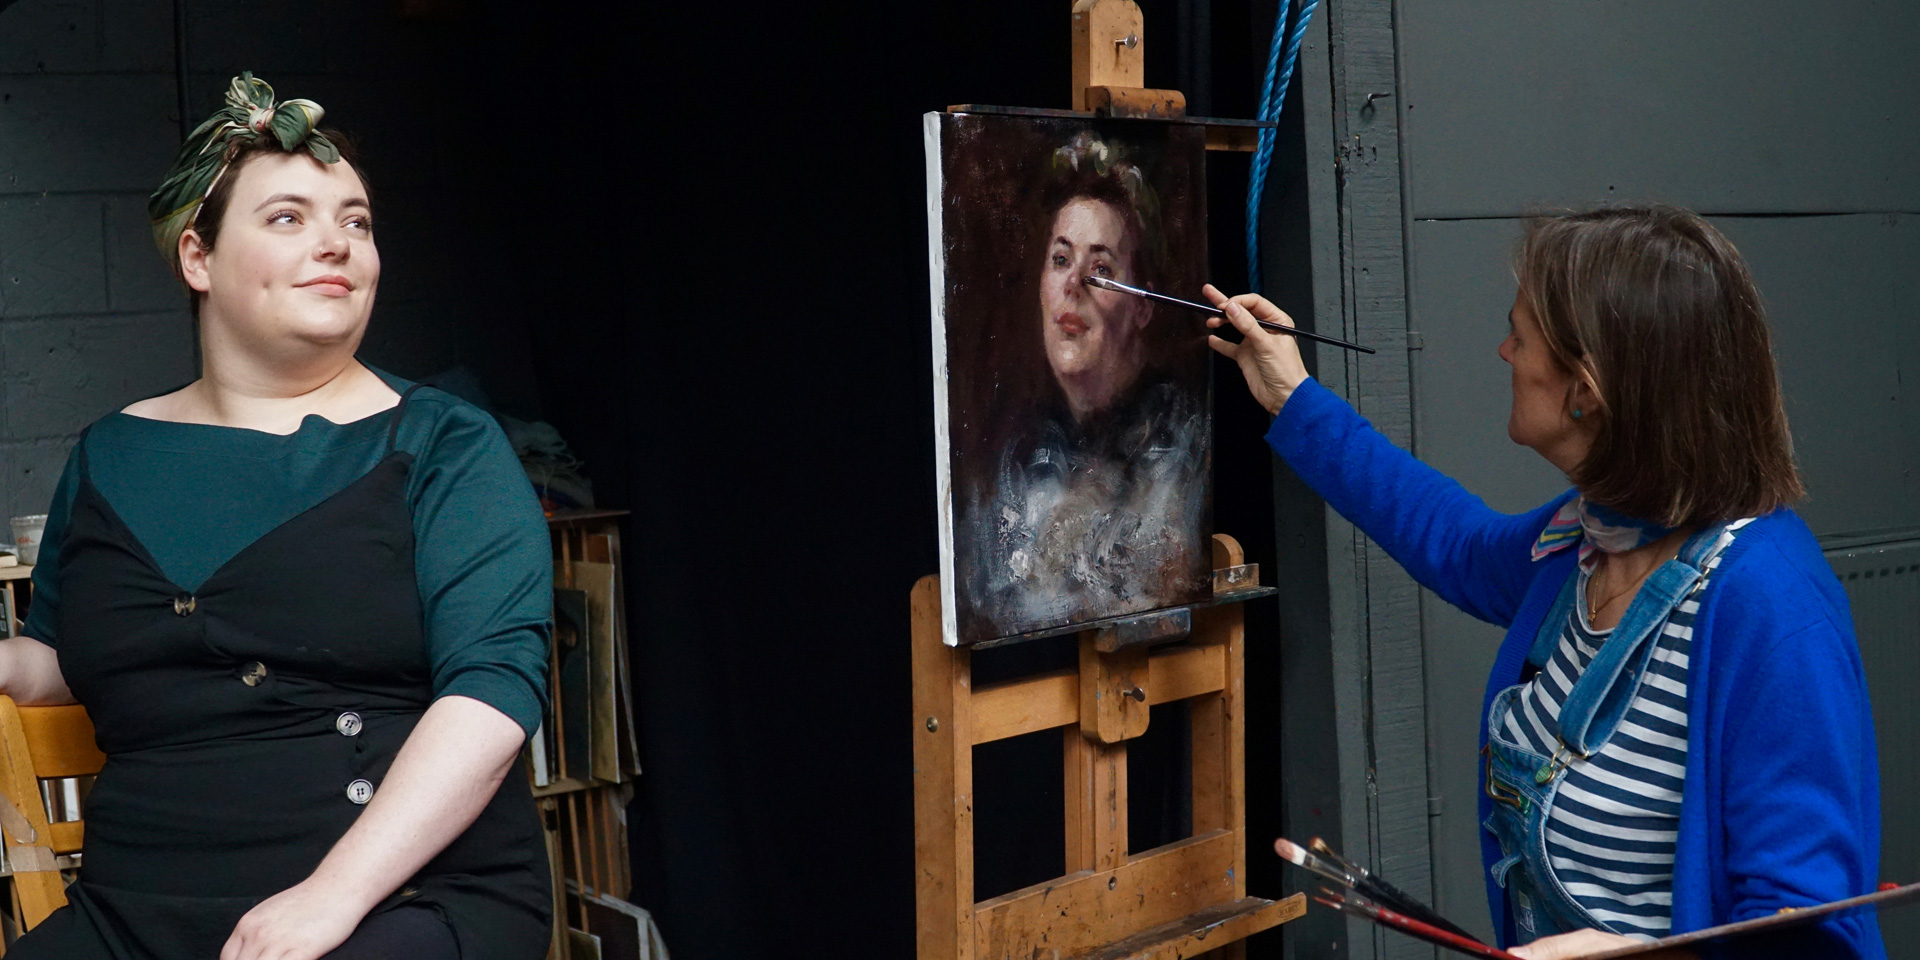 Ann Witheridge of London Fine Art Studios painting a woman's portrait